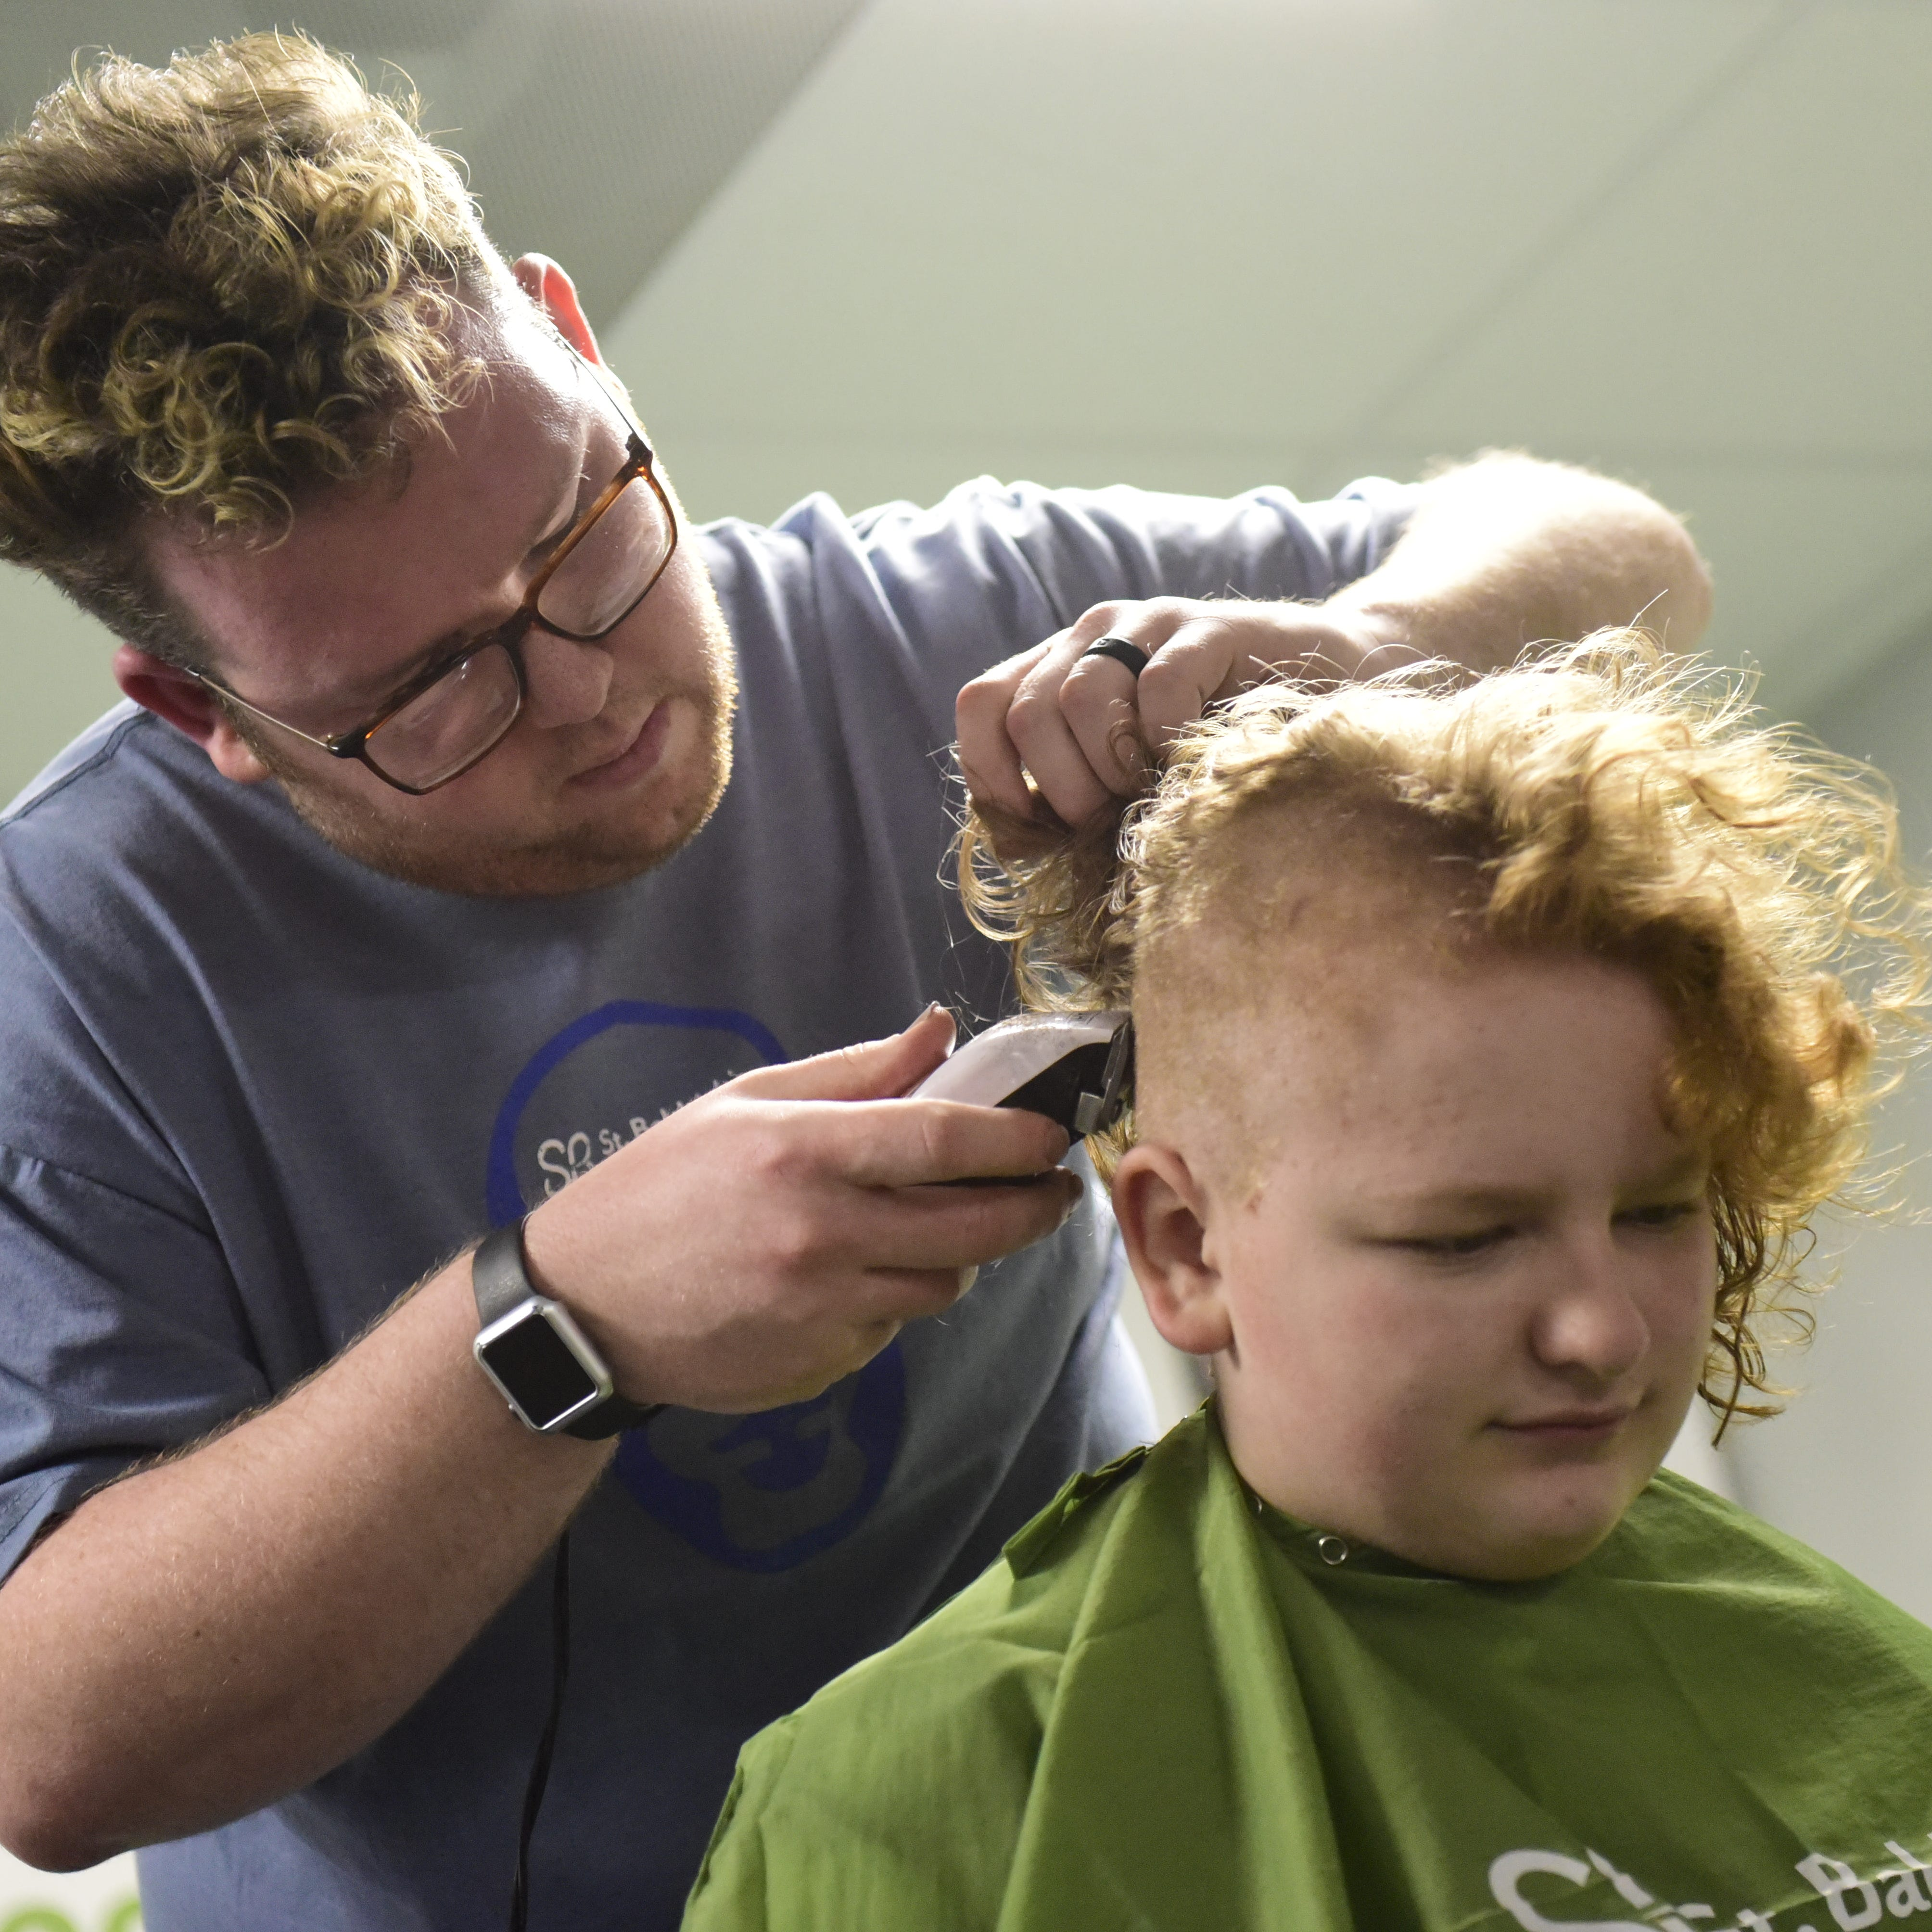 St. Baldrick's shaves hair for kids with cancer